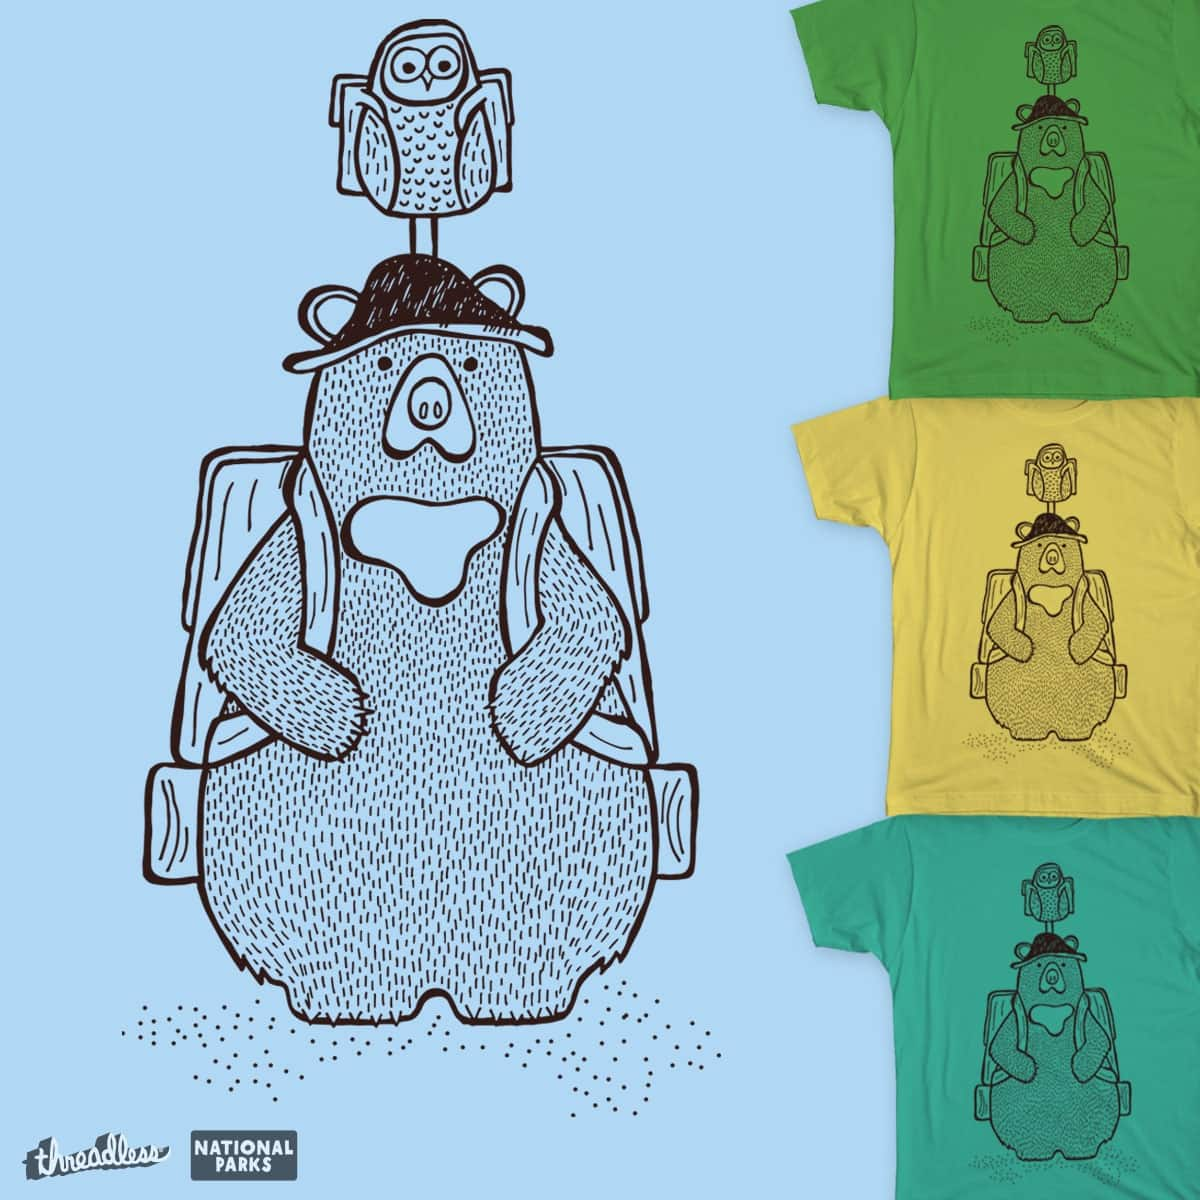 Out for a Hike by treemanjake on Threadless